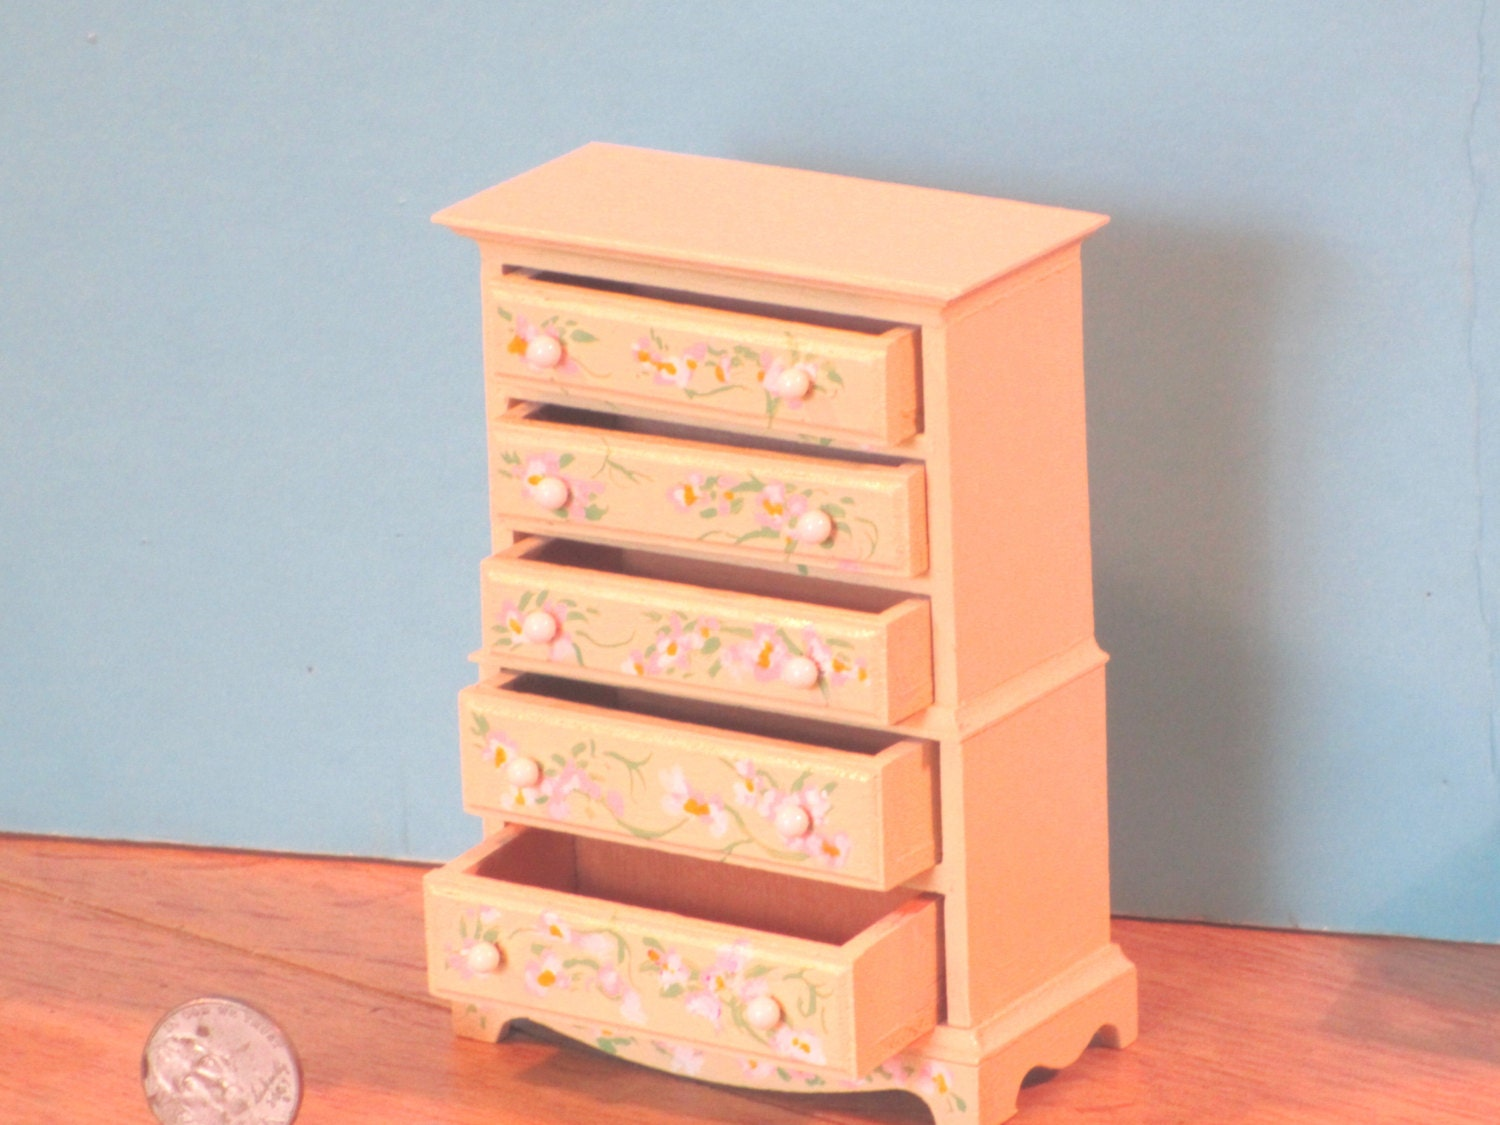 Wooden Chest Of Drawers: Miniature Hand Painted Wooden Chest Of Drawers